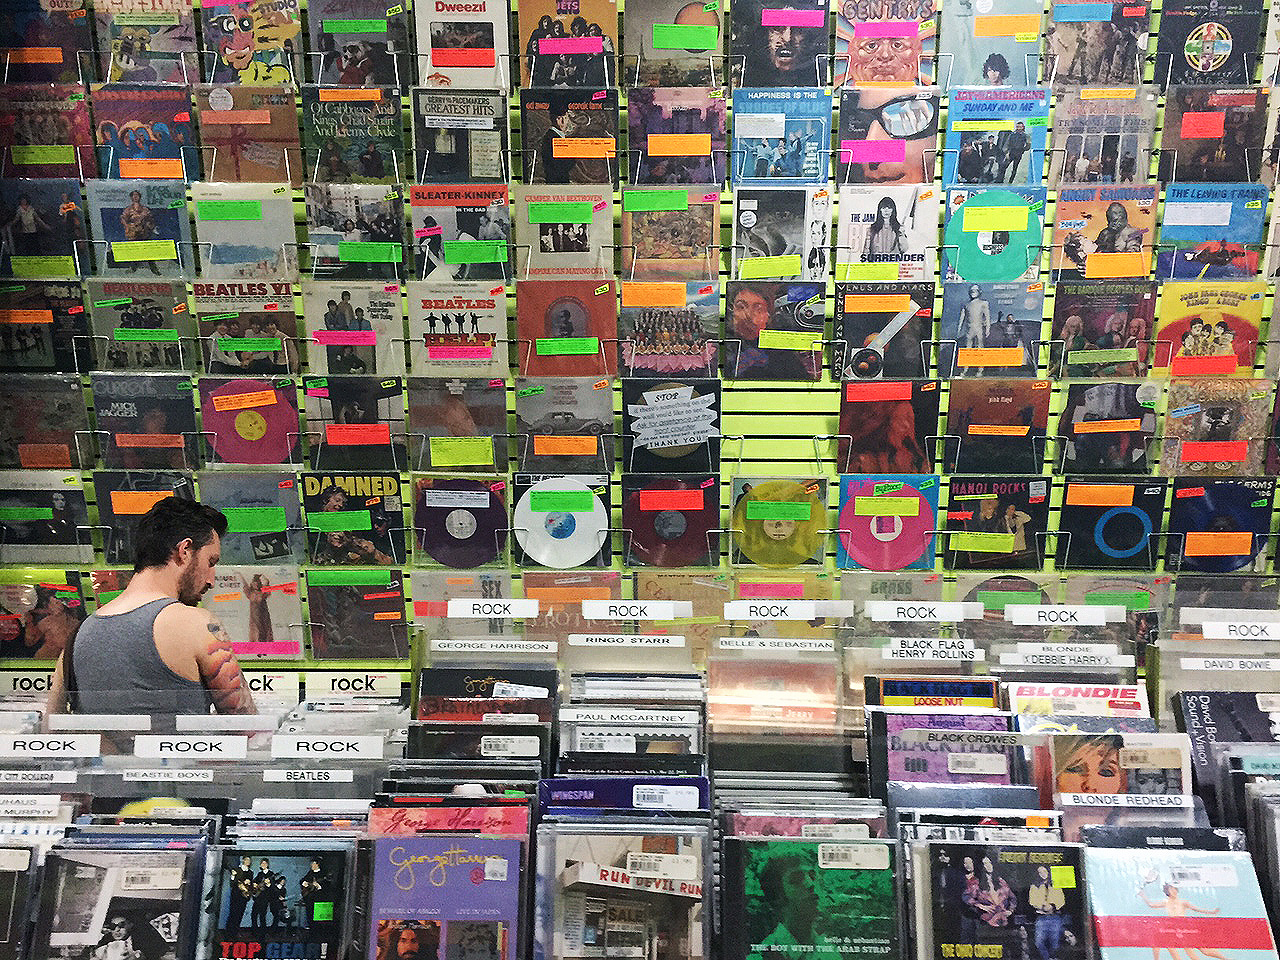 Bleecker Street Record Store NYC, peter kaye, nyc record store, record stores, vintage records, classic record stores nyc